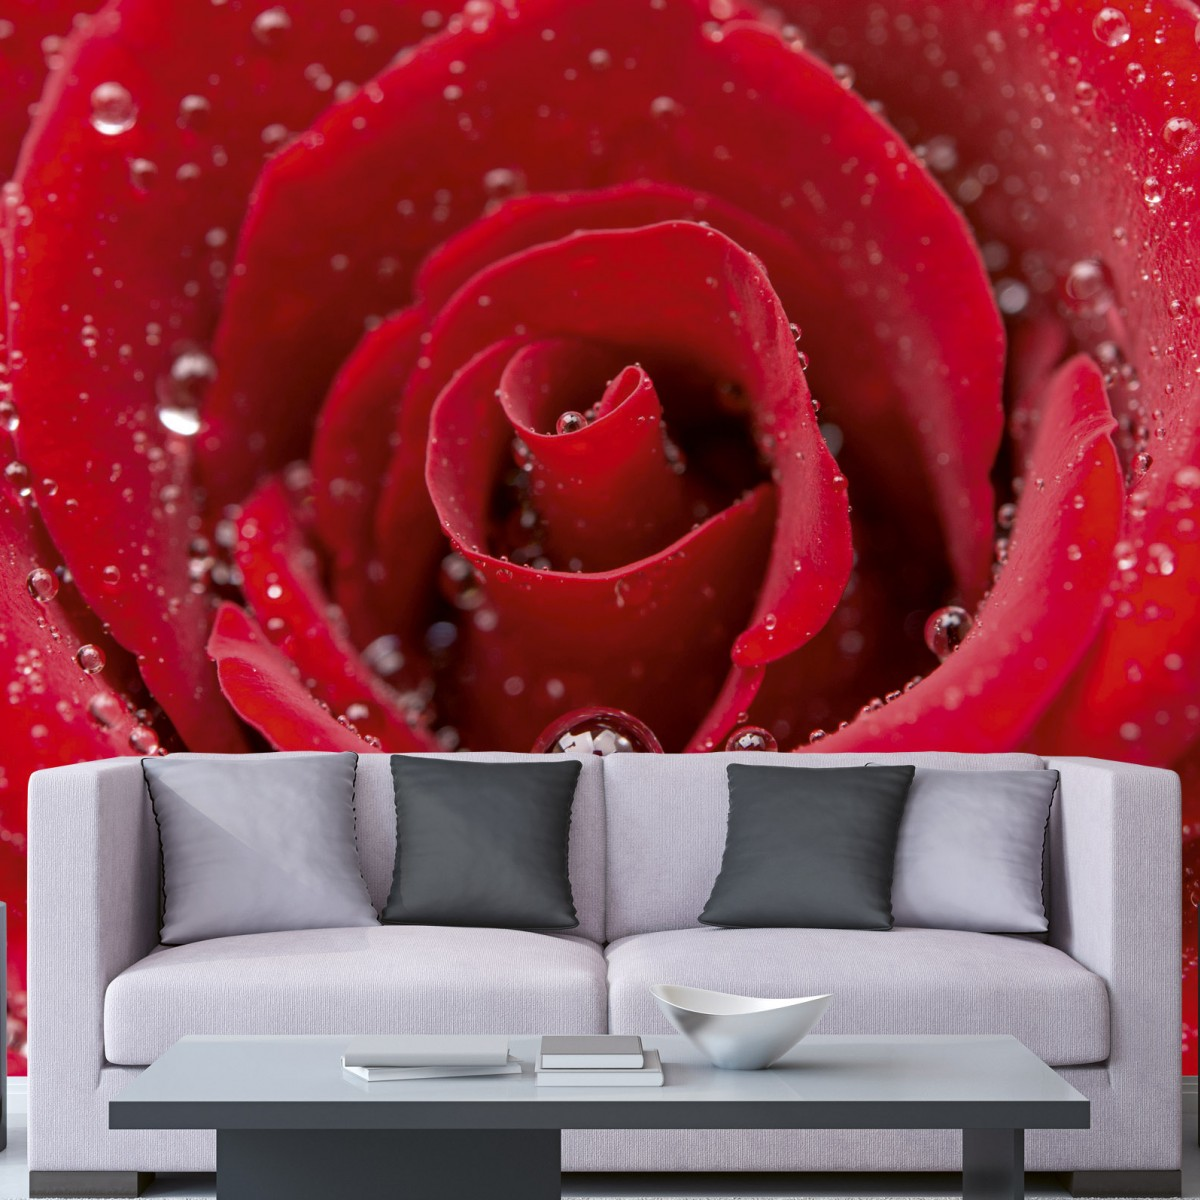 Foto tapet 3D Red Rose, Dimex, 5 fâșii, 375 x 250cm